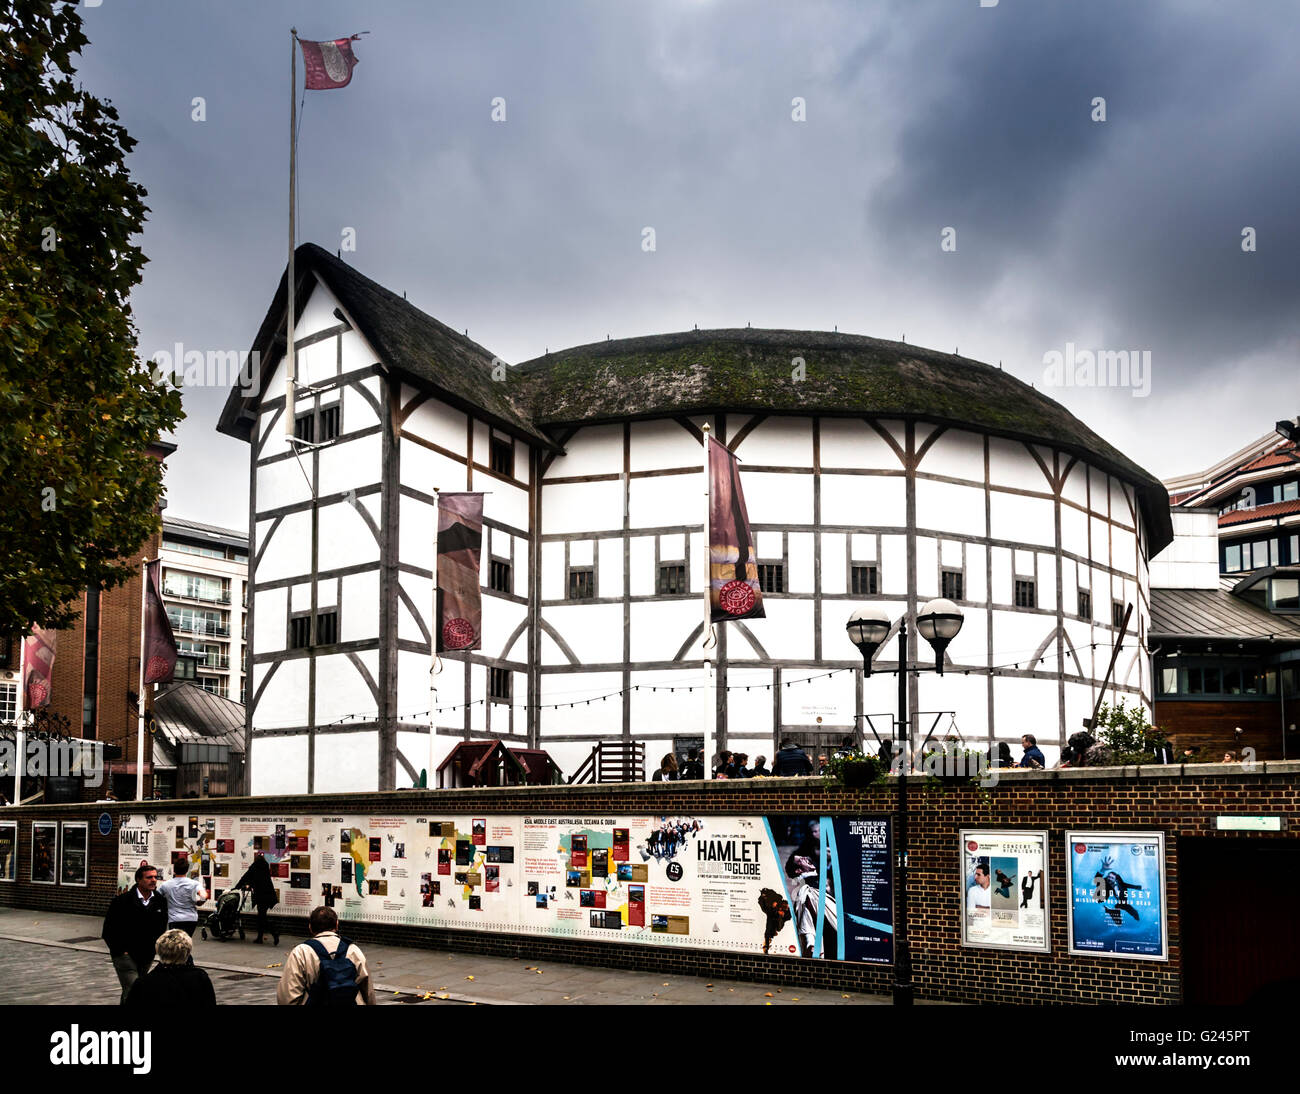 Shakespeares globe a reconstruction of the globe theatre stock shakespeares globe a reconstruction of the globe theatre southwark london england malvernweather Images